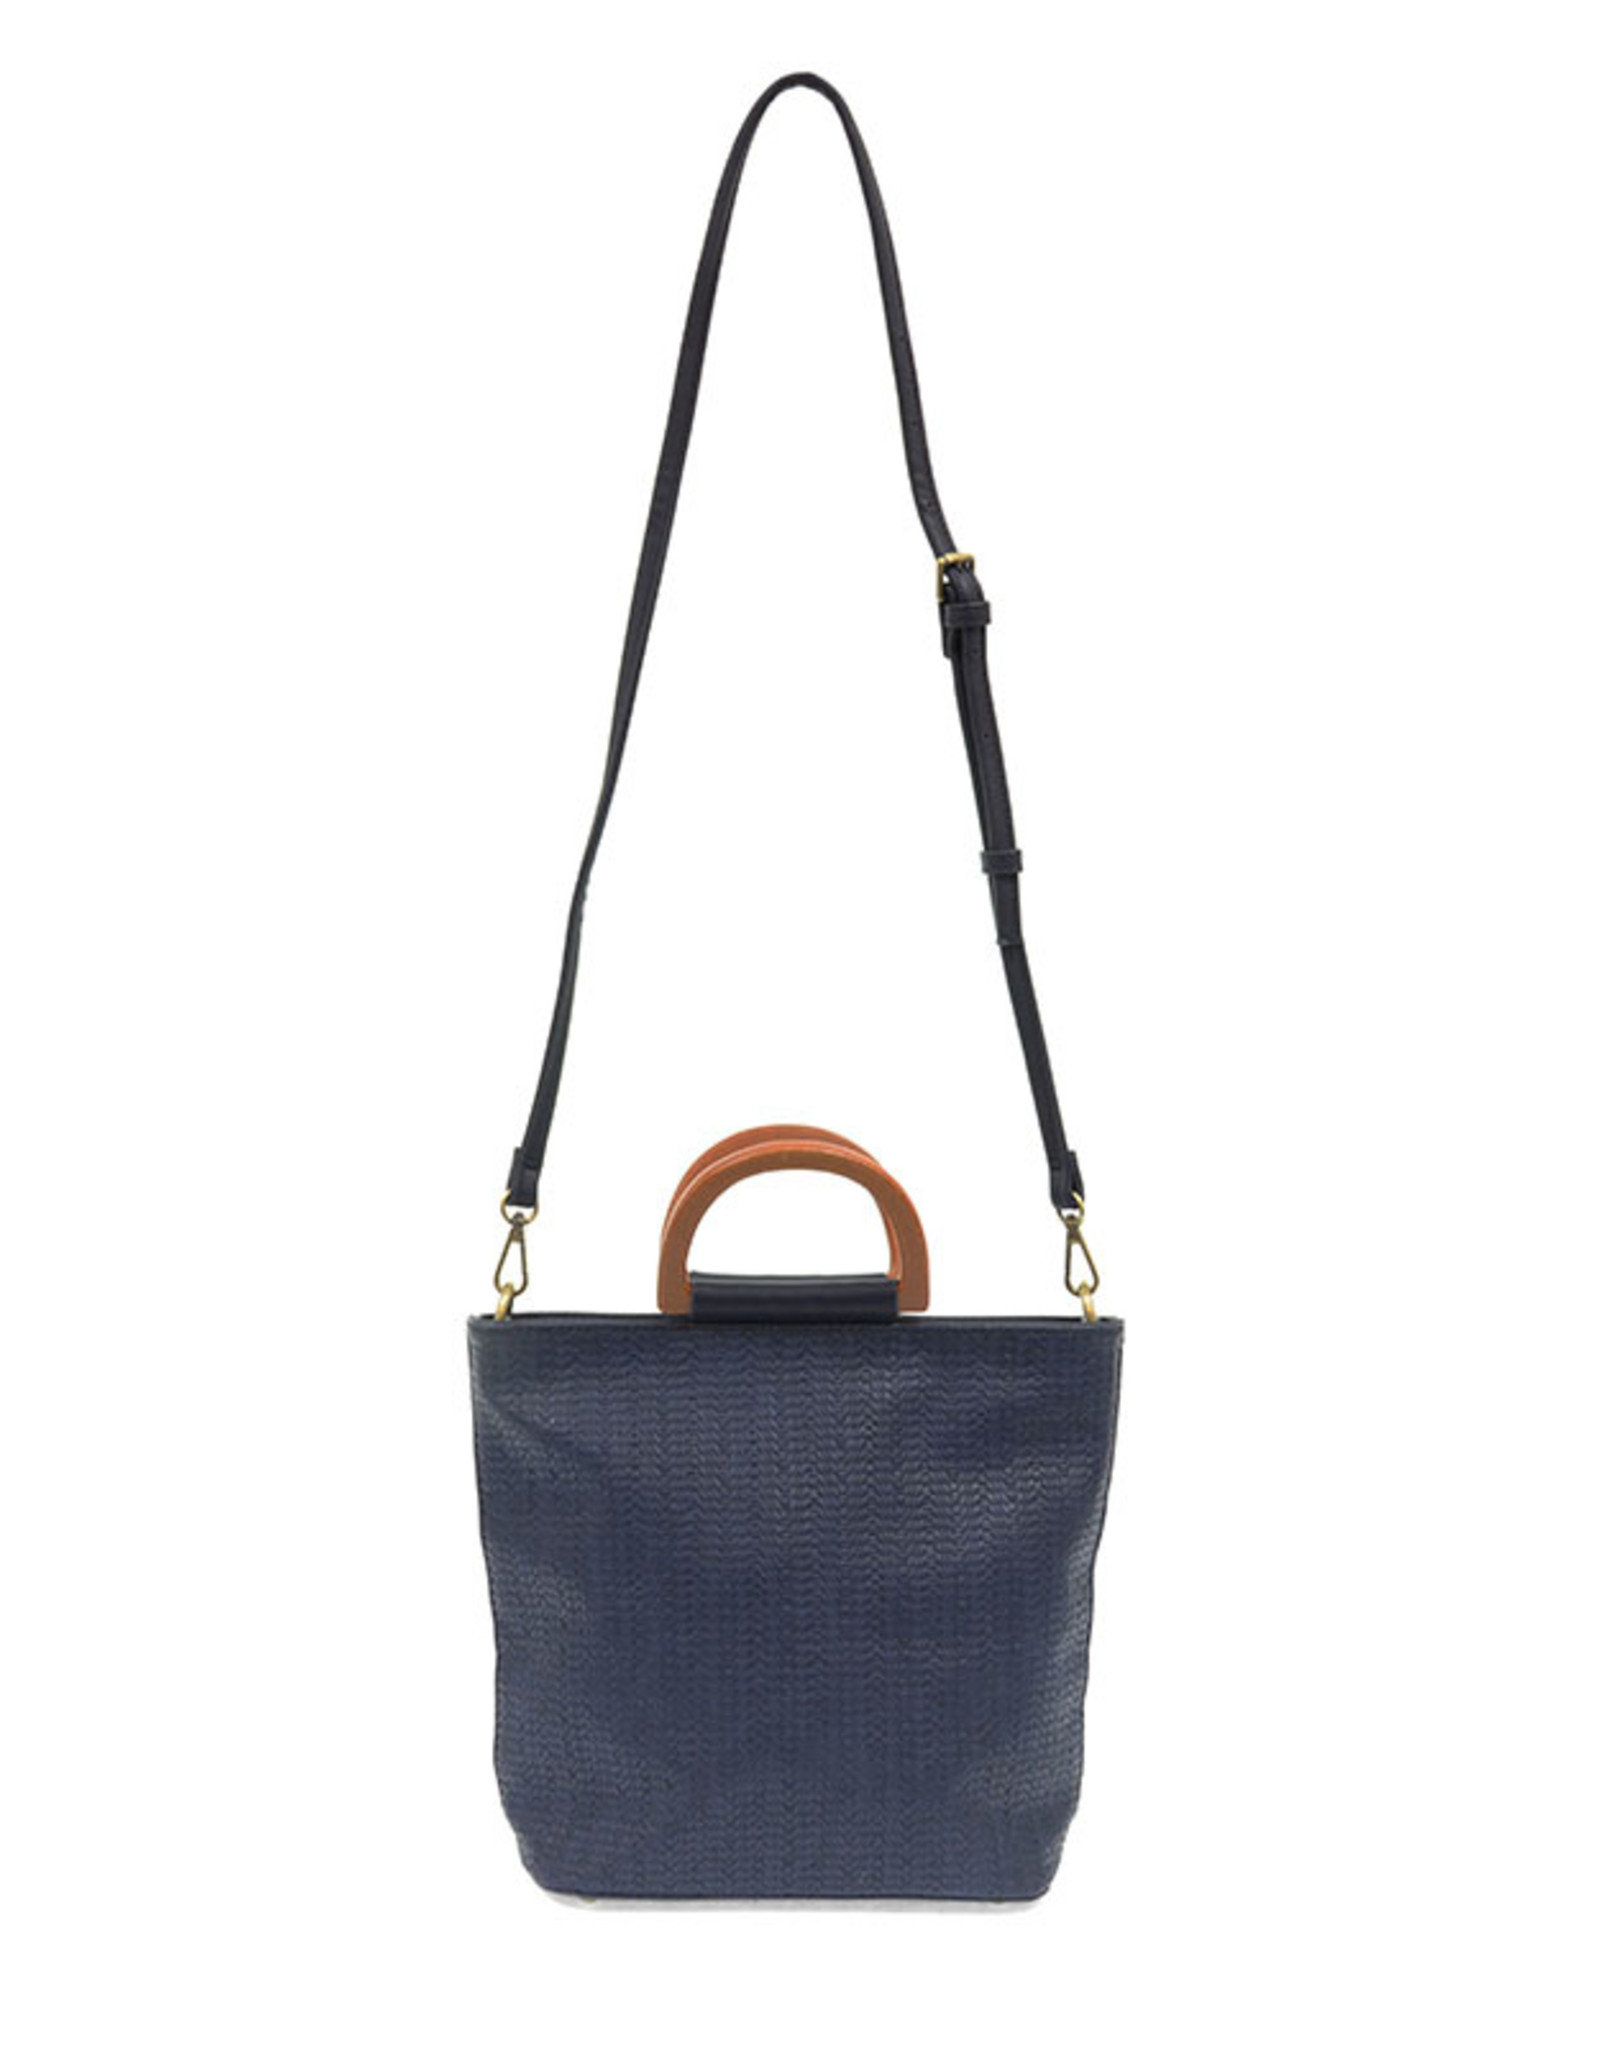 Joy Susan Accessories Lily Woven Wood Handle Tote